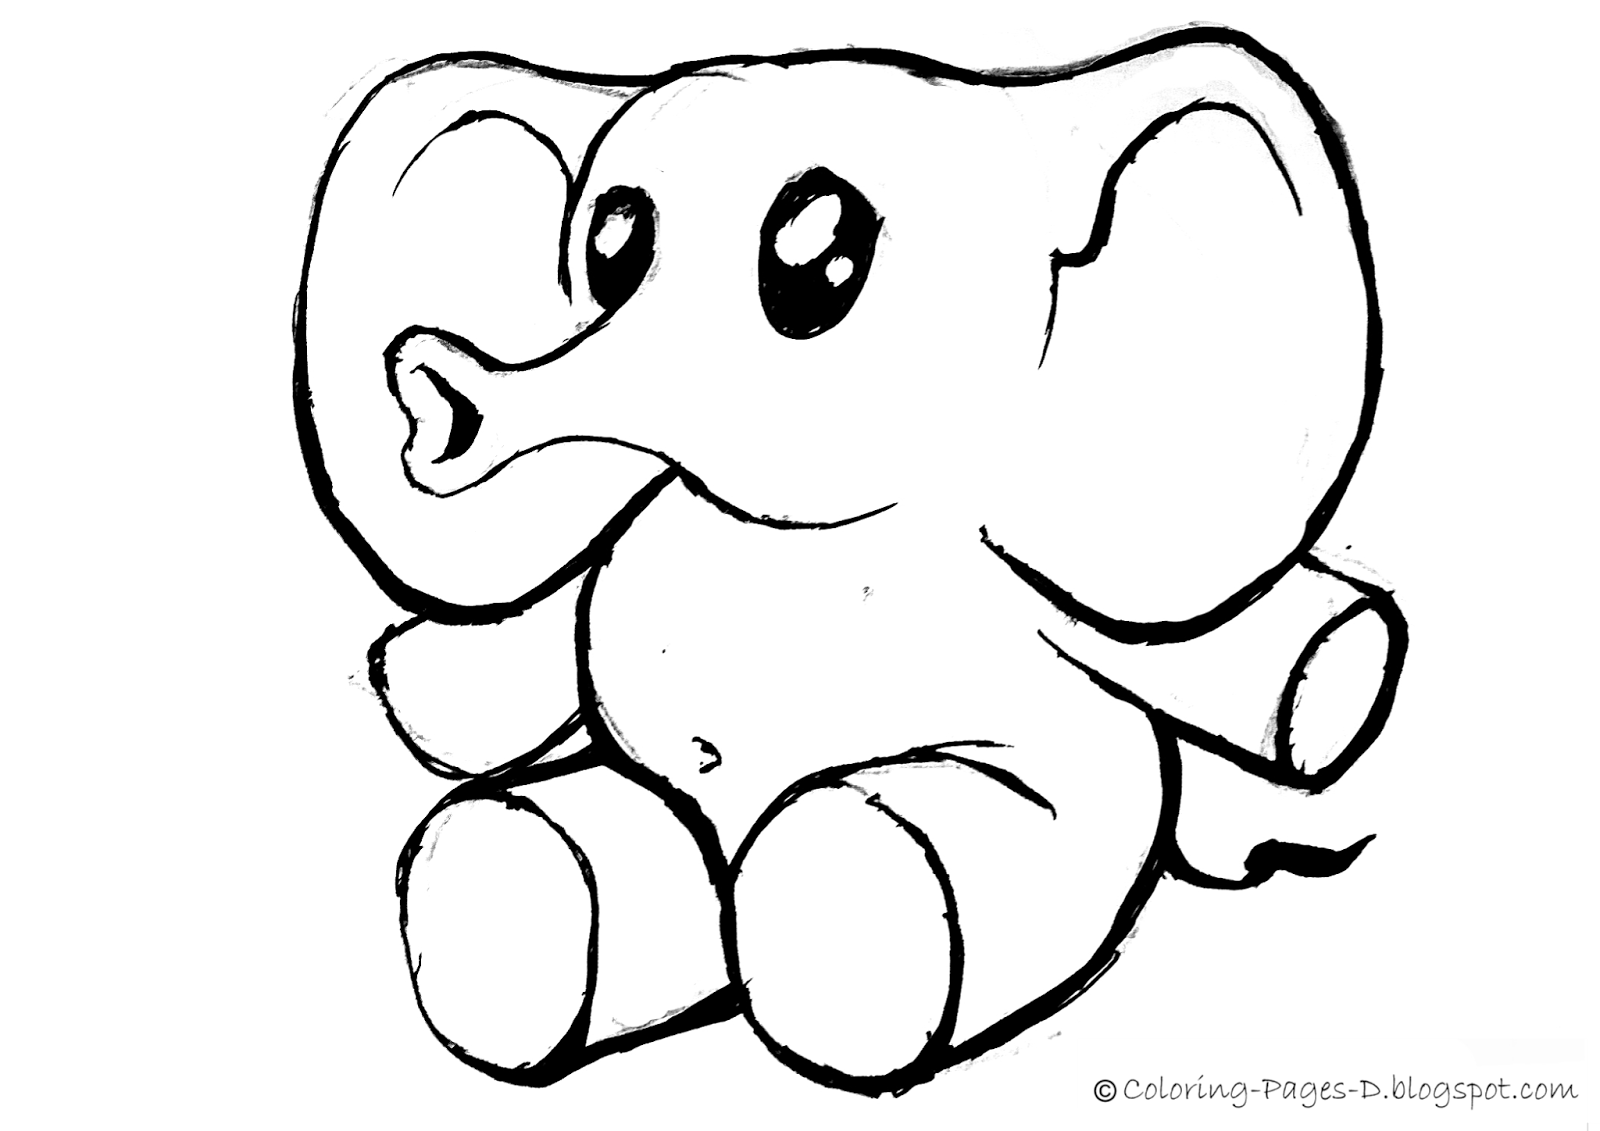 adorable baby elephant coloring pages baby elephant coloring pages ba elephant coloring page coloring pages baby elephant adorable